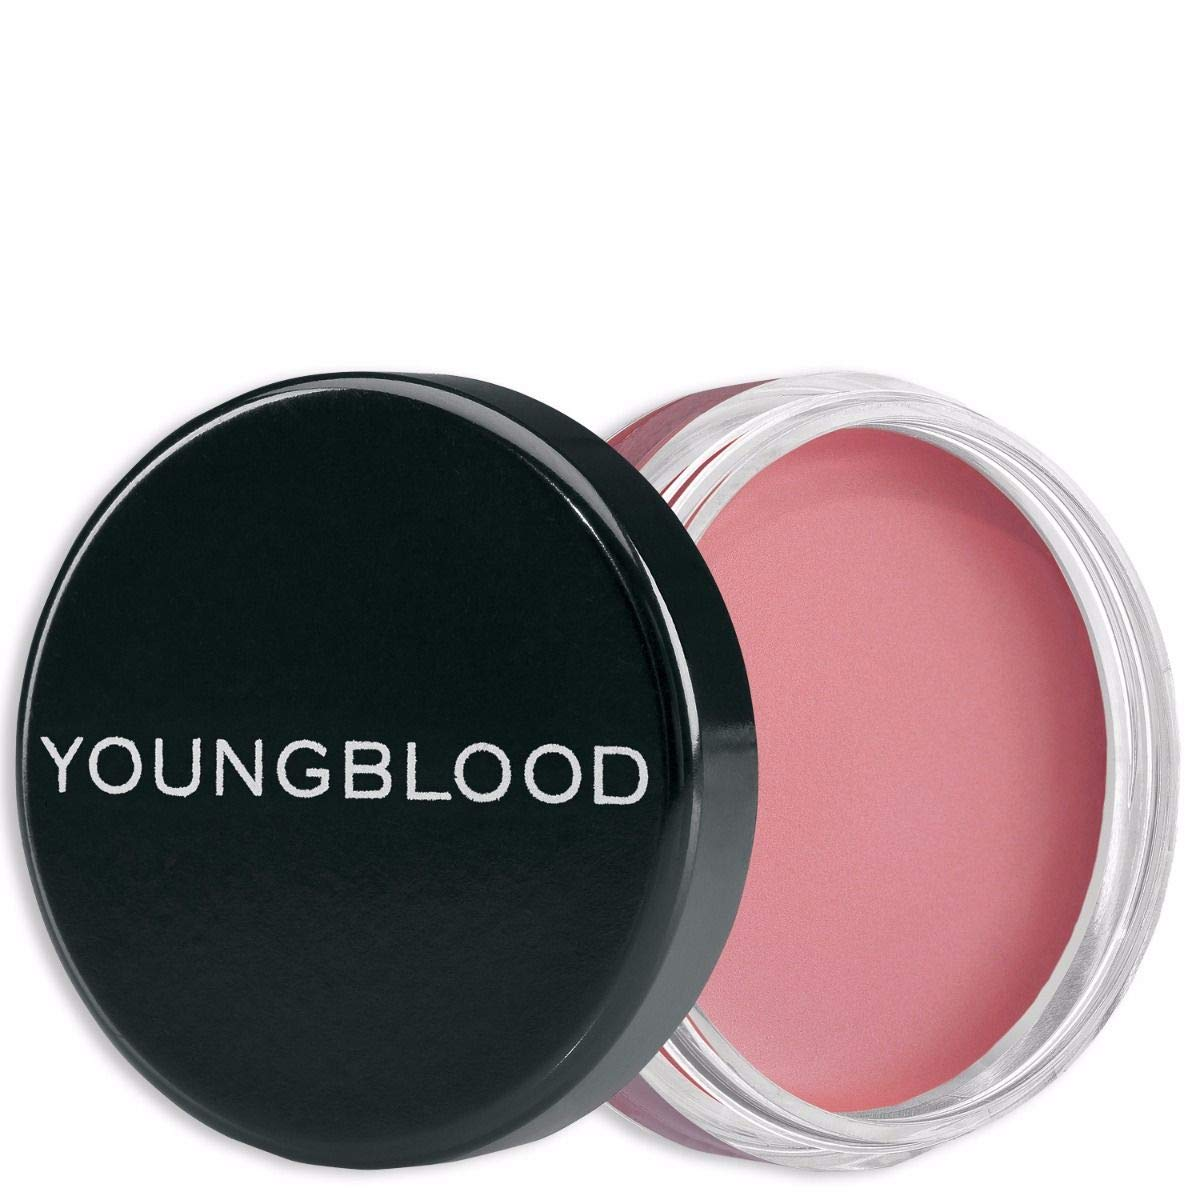 Youngblood Clean Luxury Cosmetics Luminous Cr me Blush, Luxe Blush Makeup Cream Natural Cheeks Creme Minerals Glow Matte Long Lasting Cruelty-Free, Paraben-Free